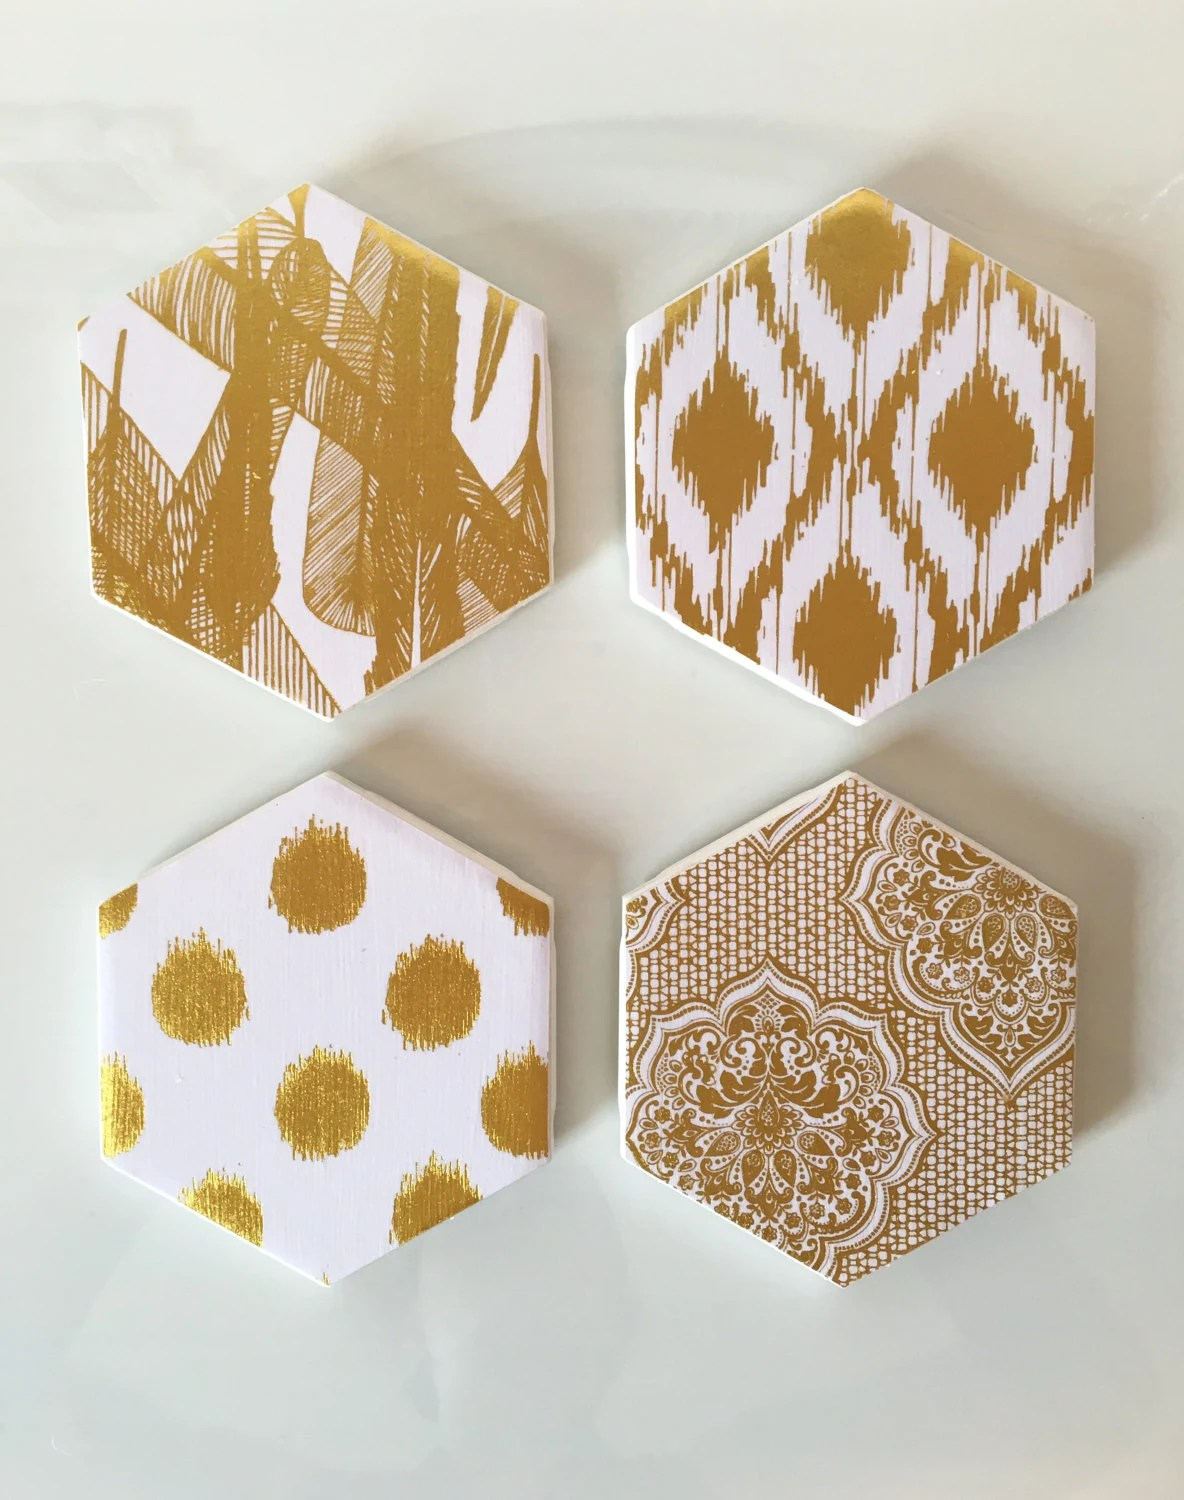 White And Gold Coasters Coasters Gold And White Coasters Decorative Coasters Set Of